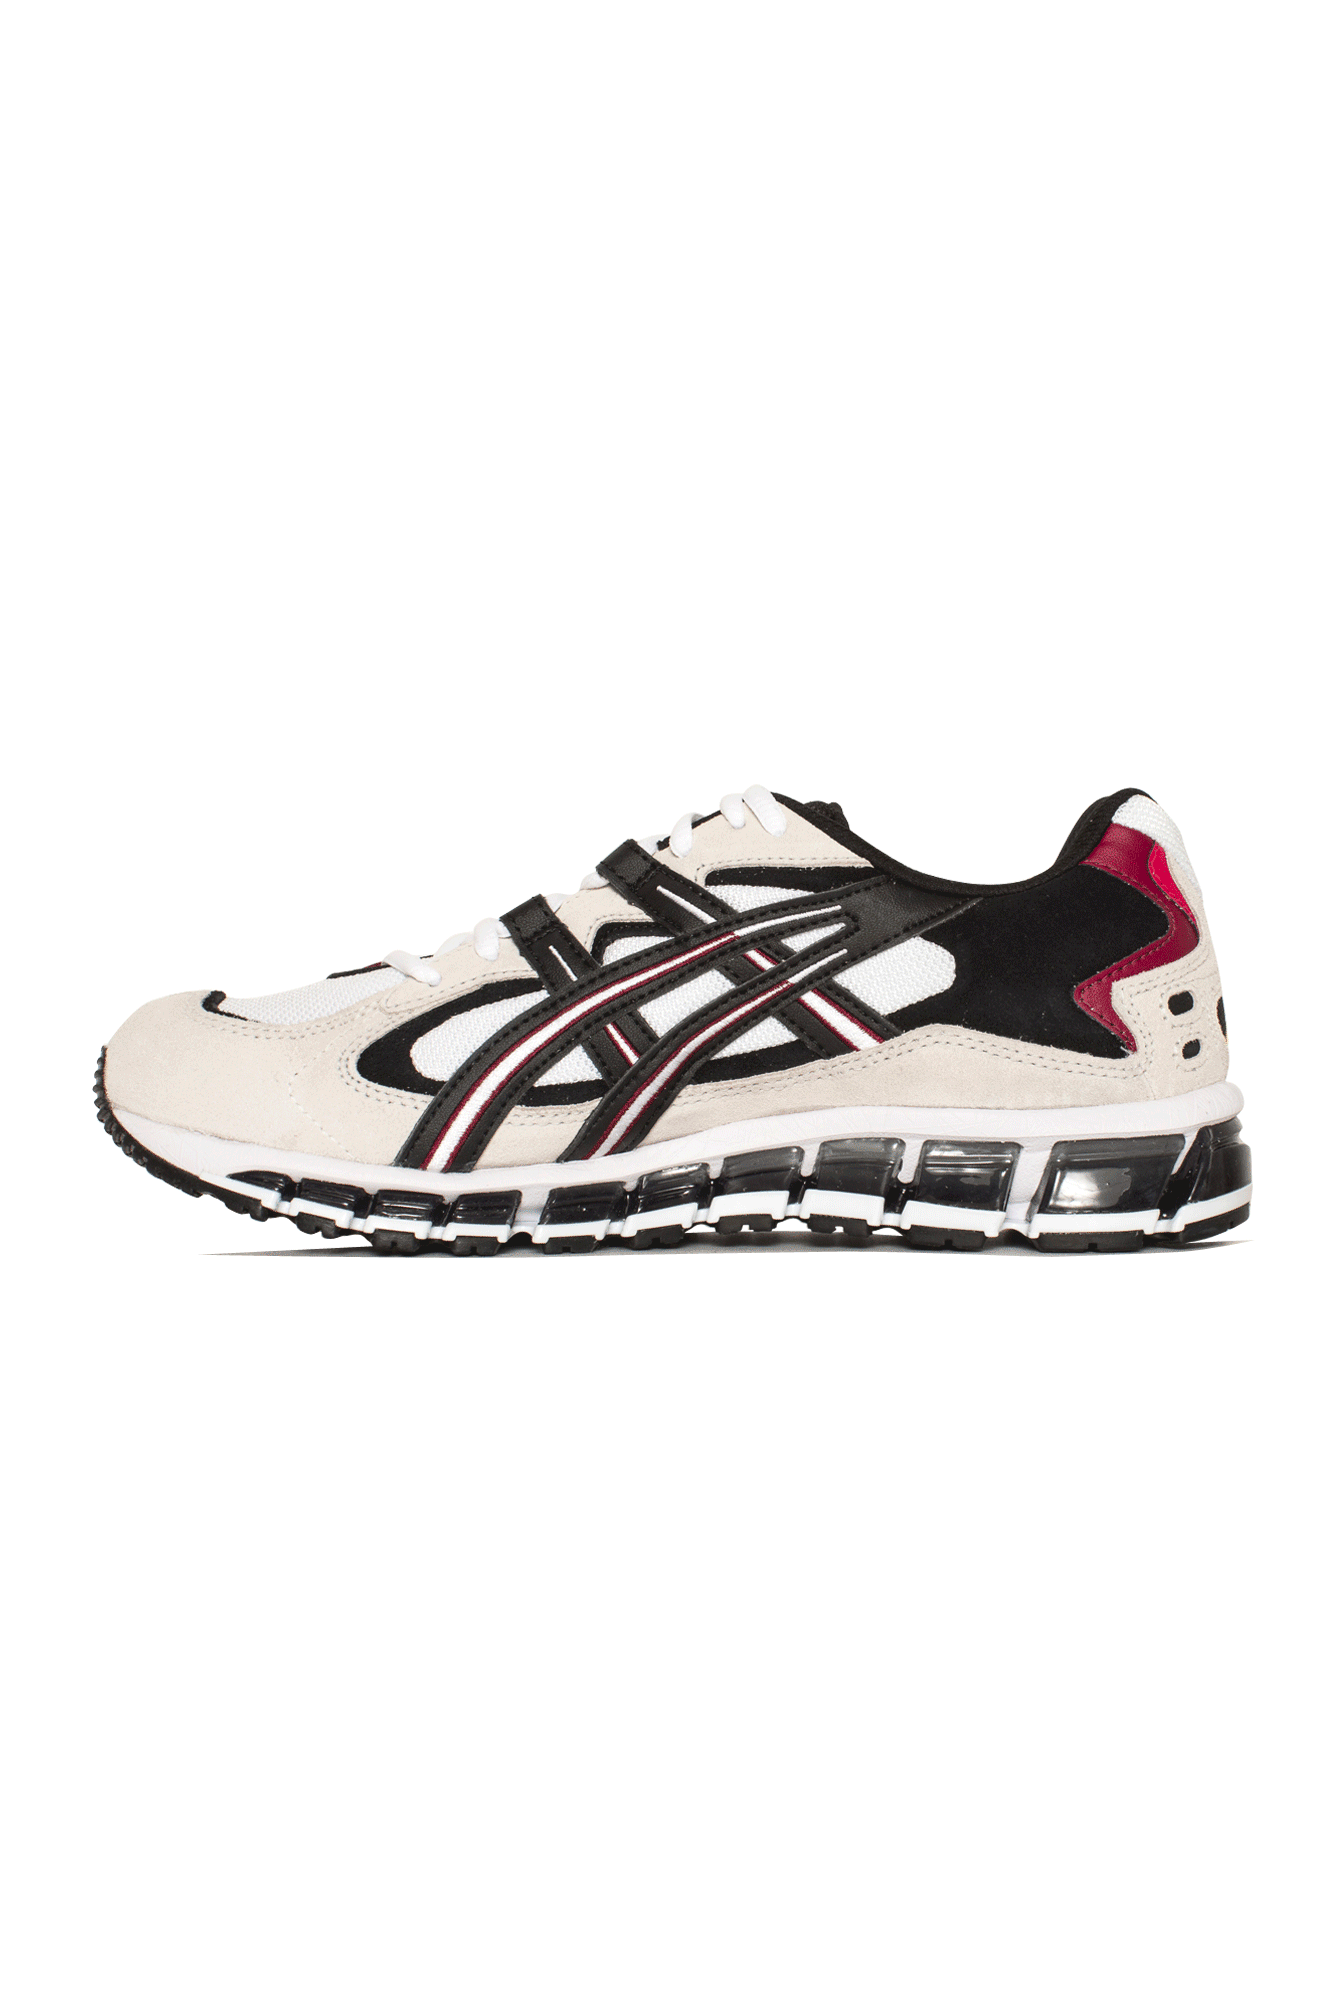 Asics Sneakers Gel Kayano 5 360 Bianco 1021A160#000#100#7 - One Block Down